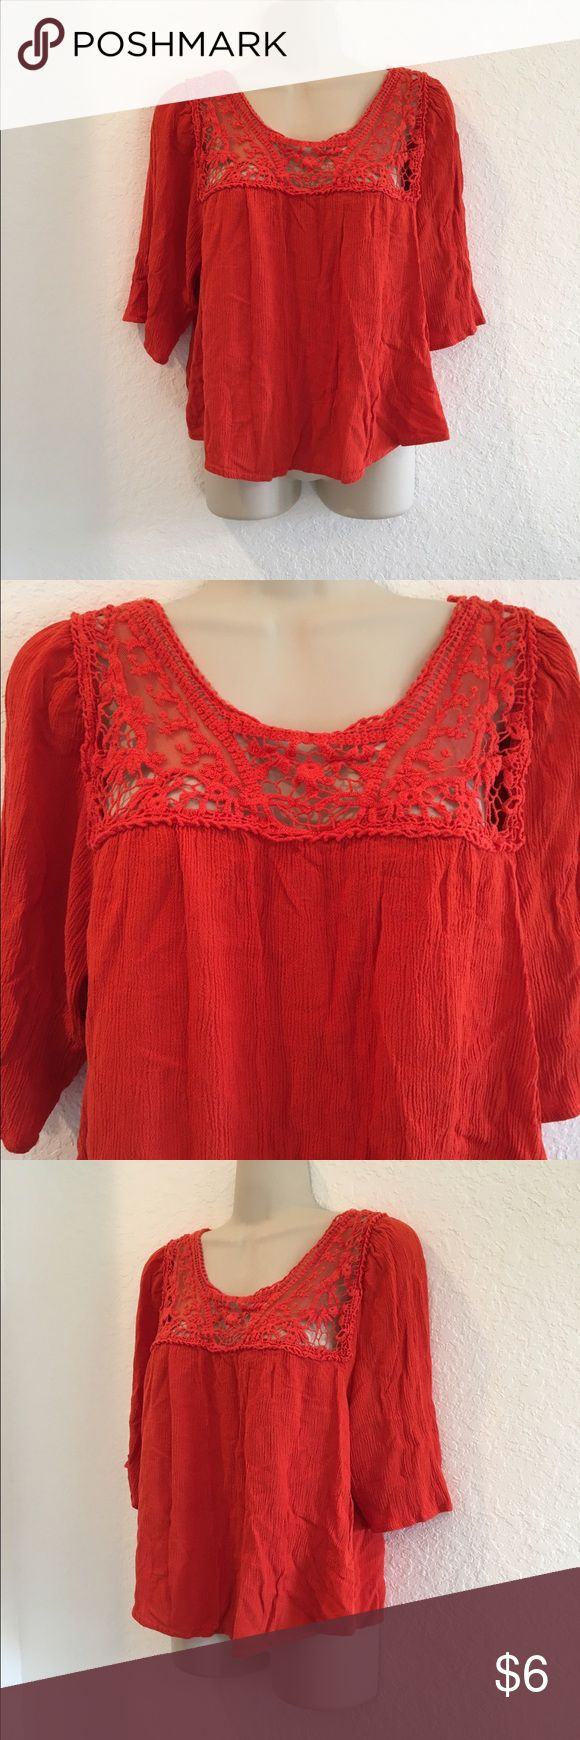 Cute Petite Shirt A beautiful reddish-orange top with crochet detailing around the neckline. It's been worn but it's still in good condition. Unique Spectrum Tops Blouses